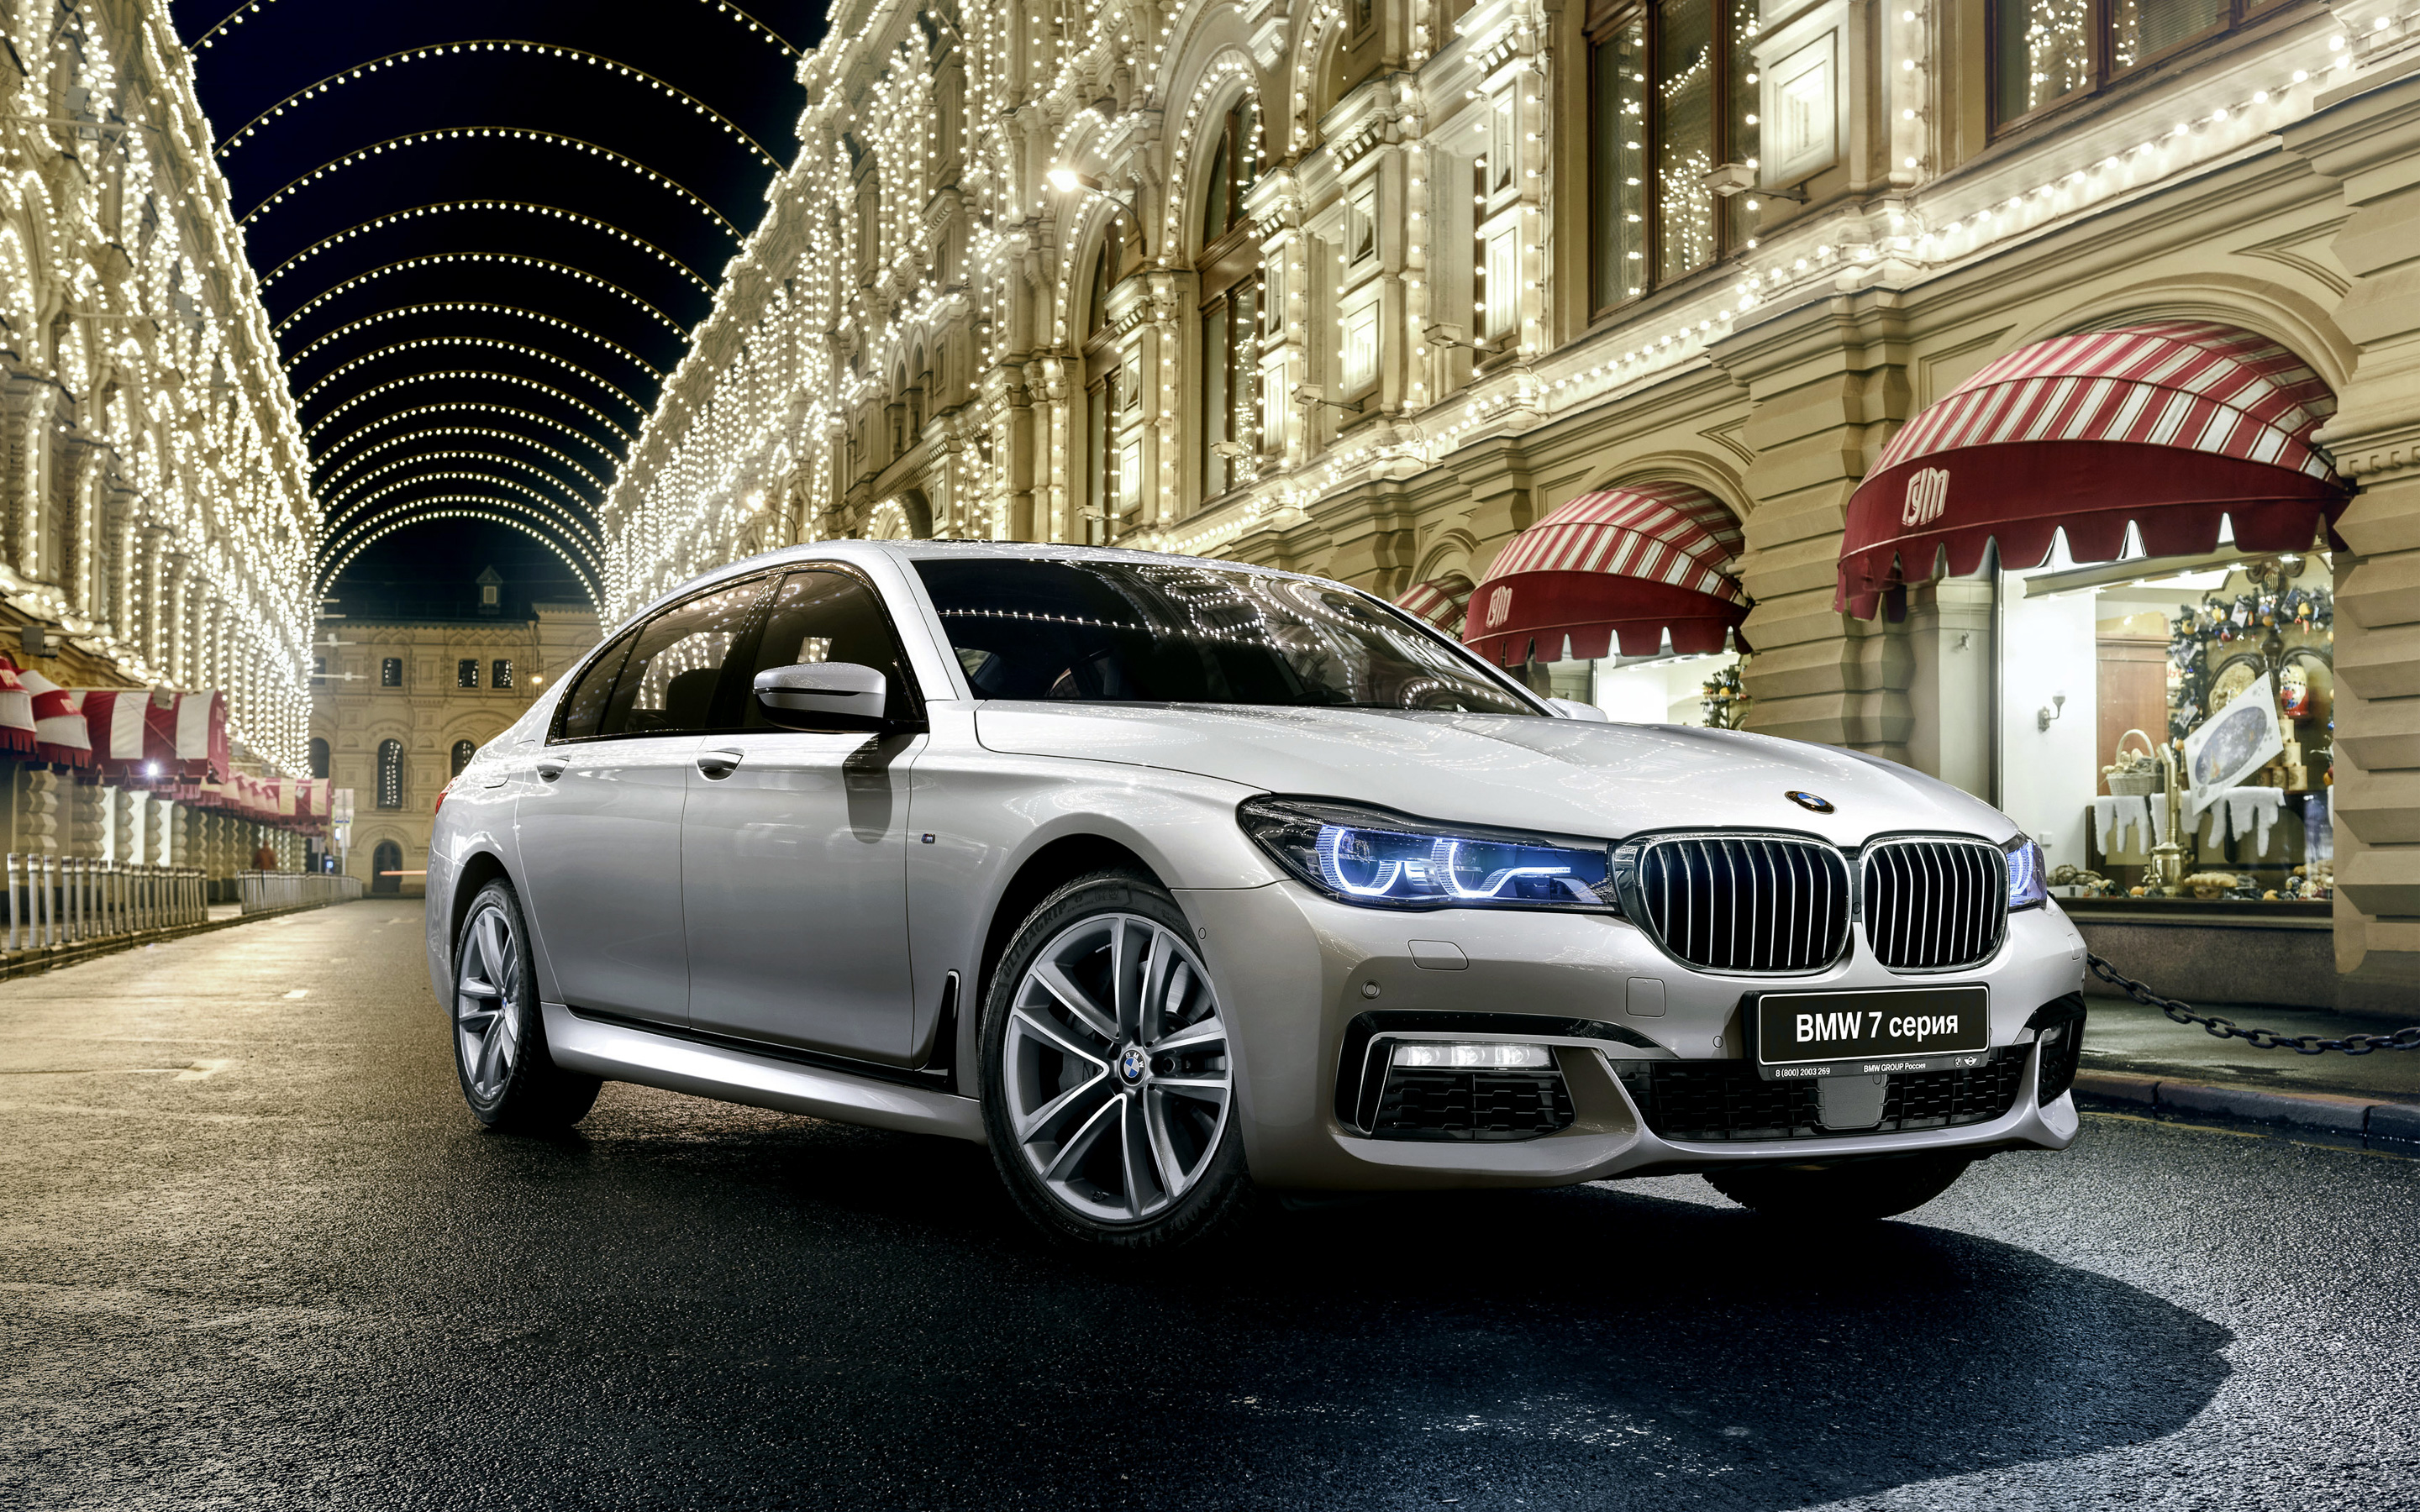 Bmw 7 Series Wallpapers Wallpapers All Superior Bmw 7 Series Wallpapers Backgrounds Wallpapersplanet Net